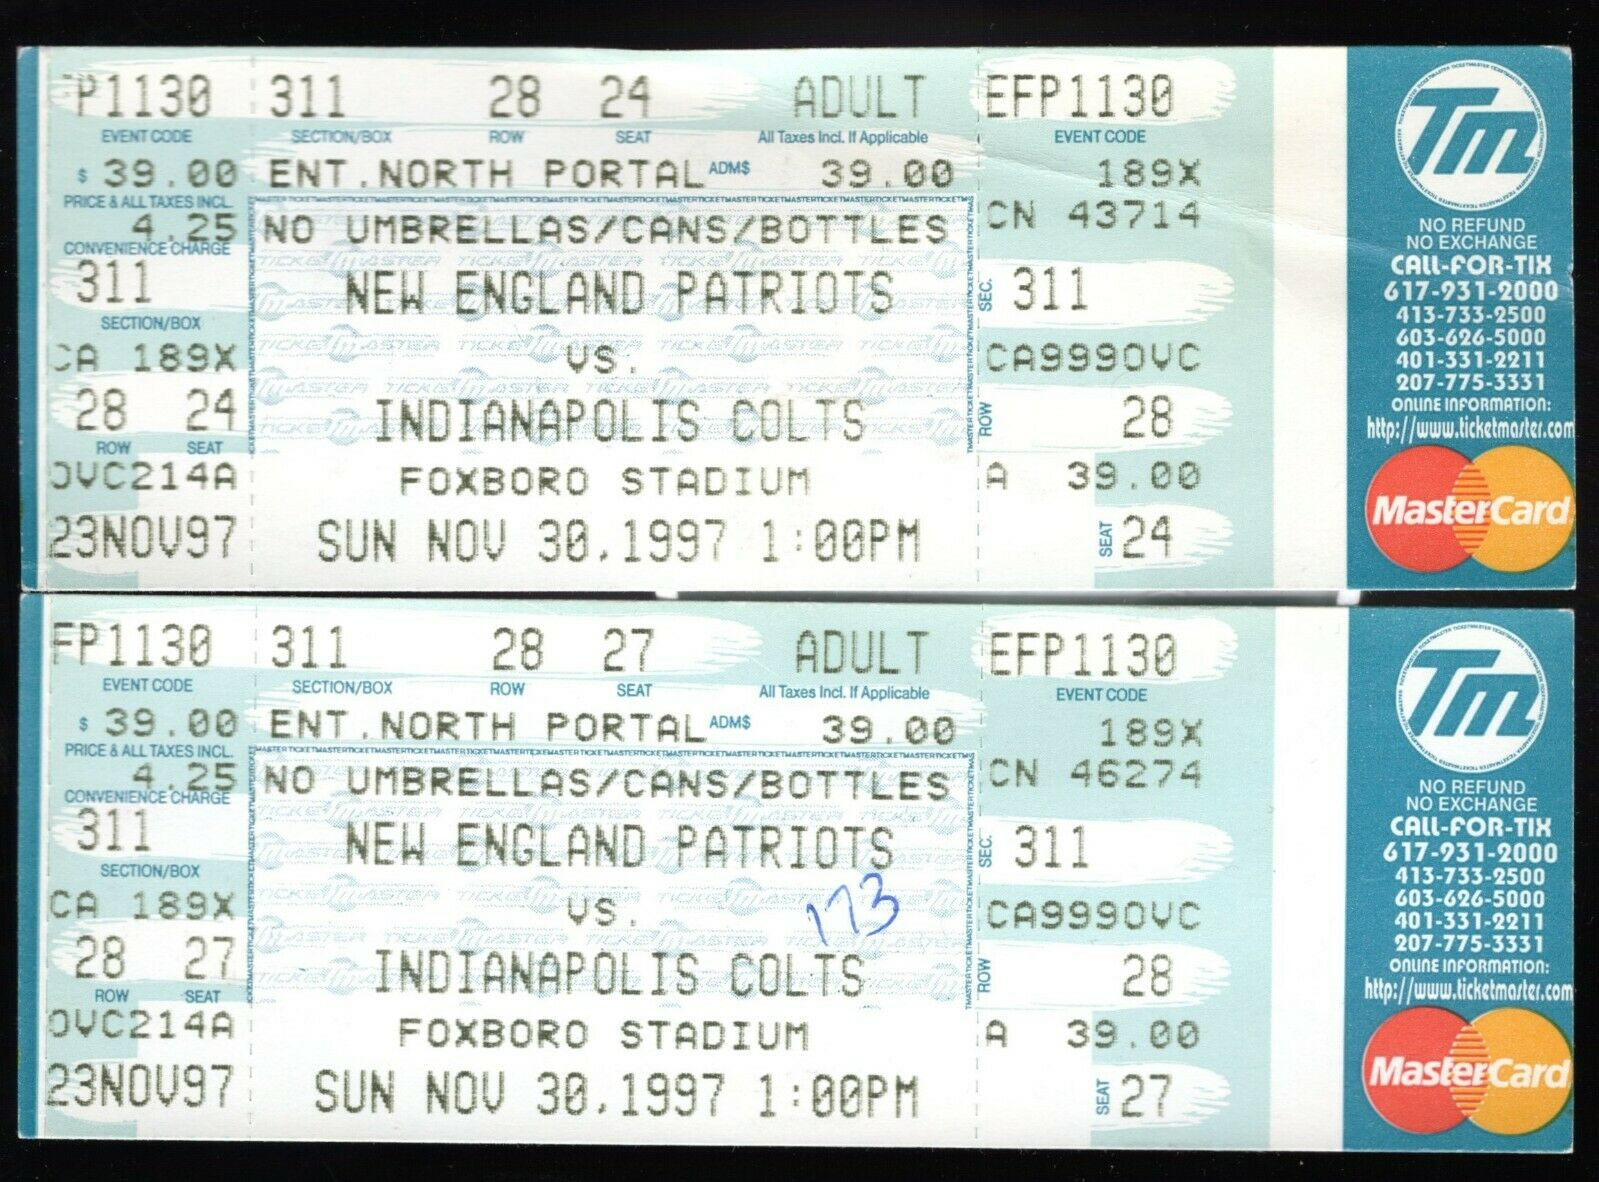 2 Nov 30, 1997 New England Patriots & Indianapolis Colts Full Tickets 20-17 Pats